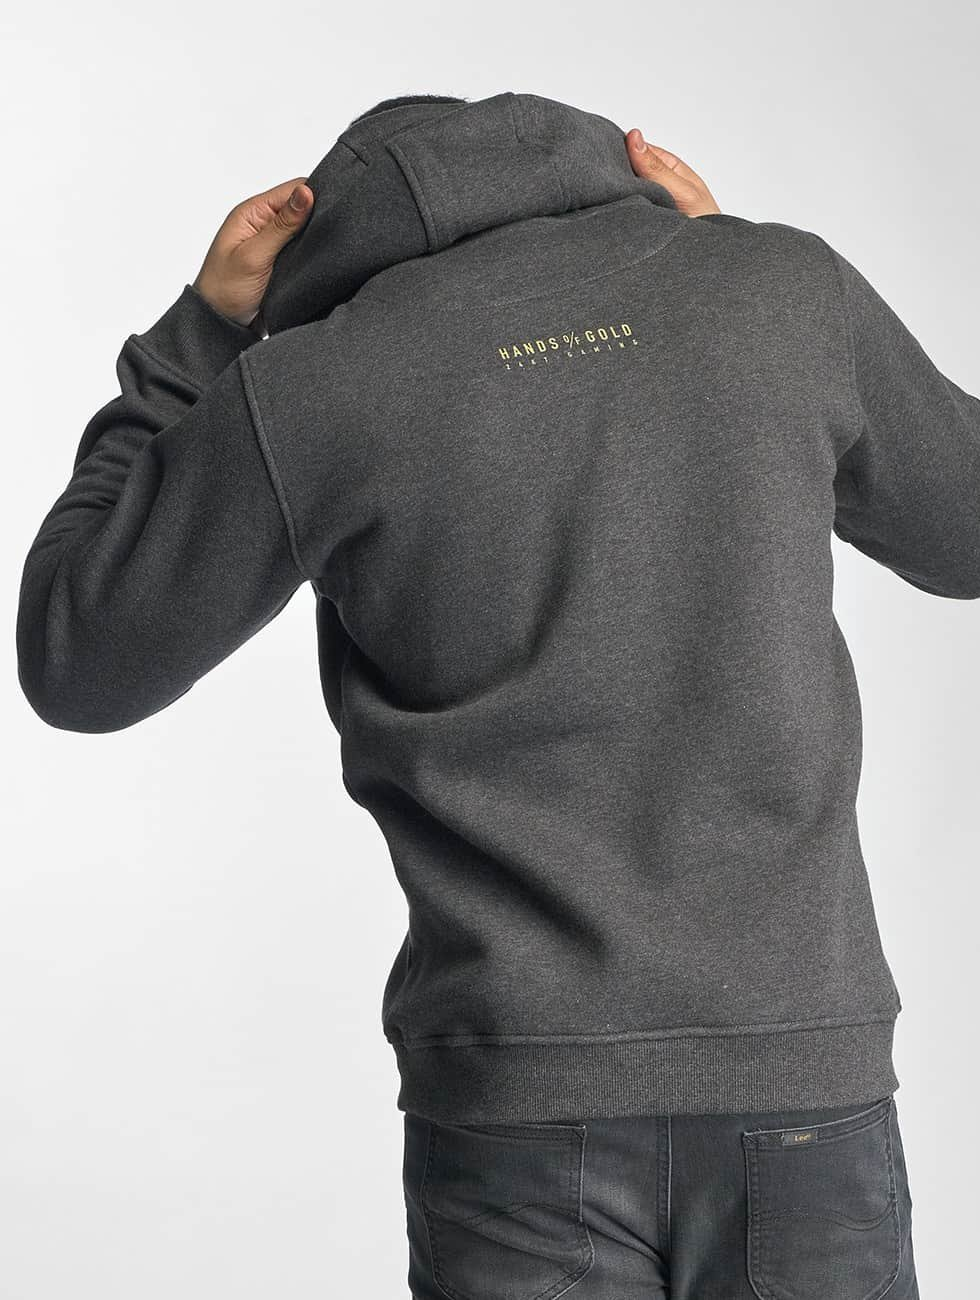 Hands of Gold Hoodie All Day grey